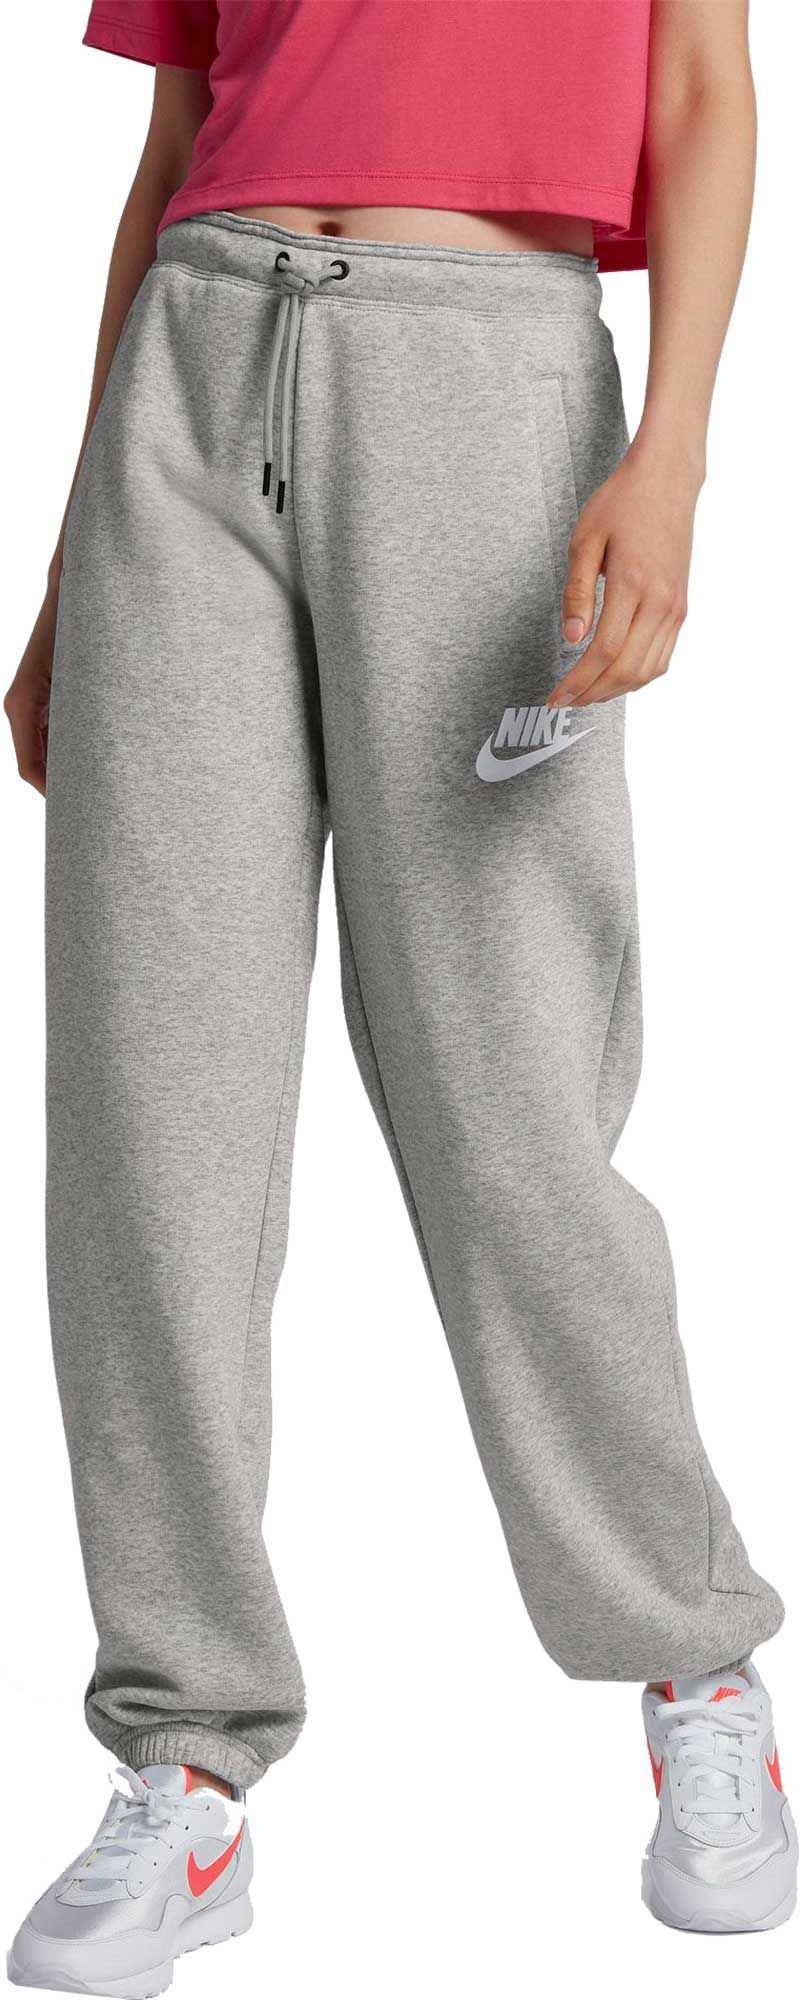 pre order best place sneakers for cheap Nike Women's Sportswear Rally Sweatpants | Fashion in 2019 ...